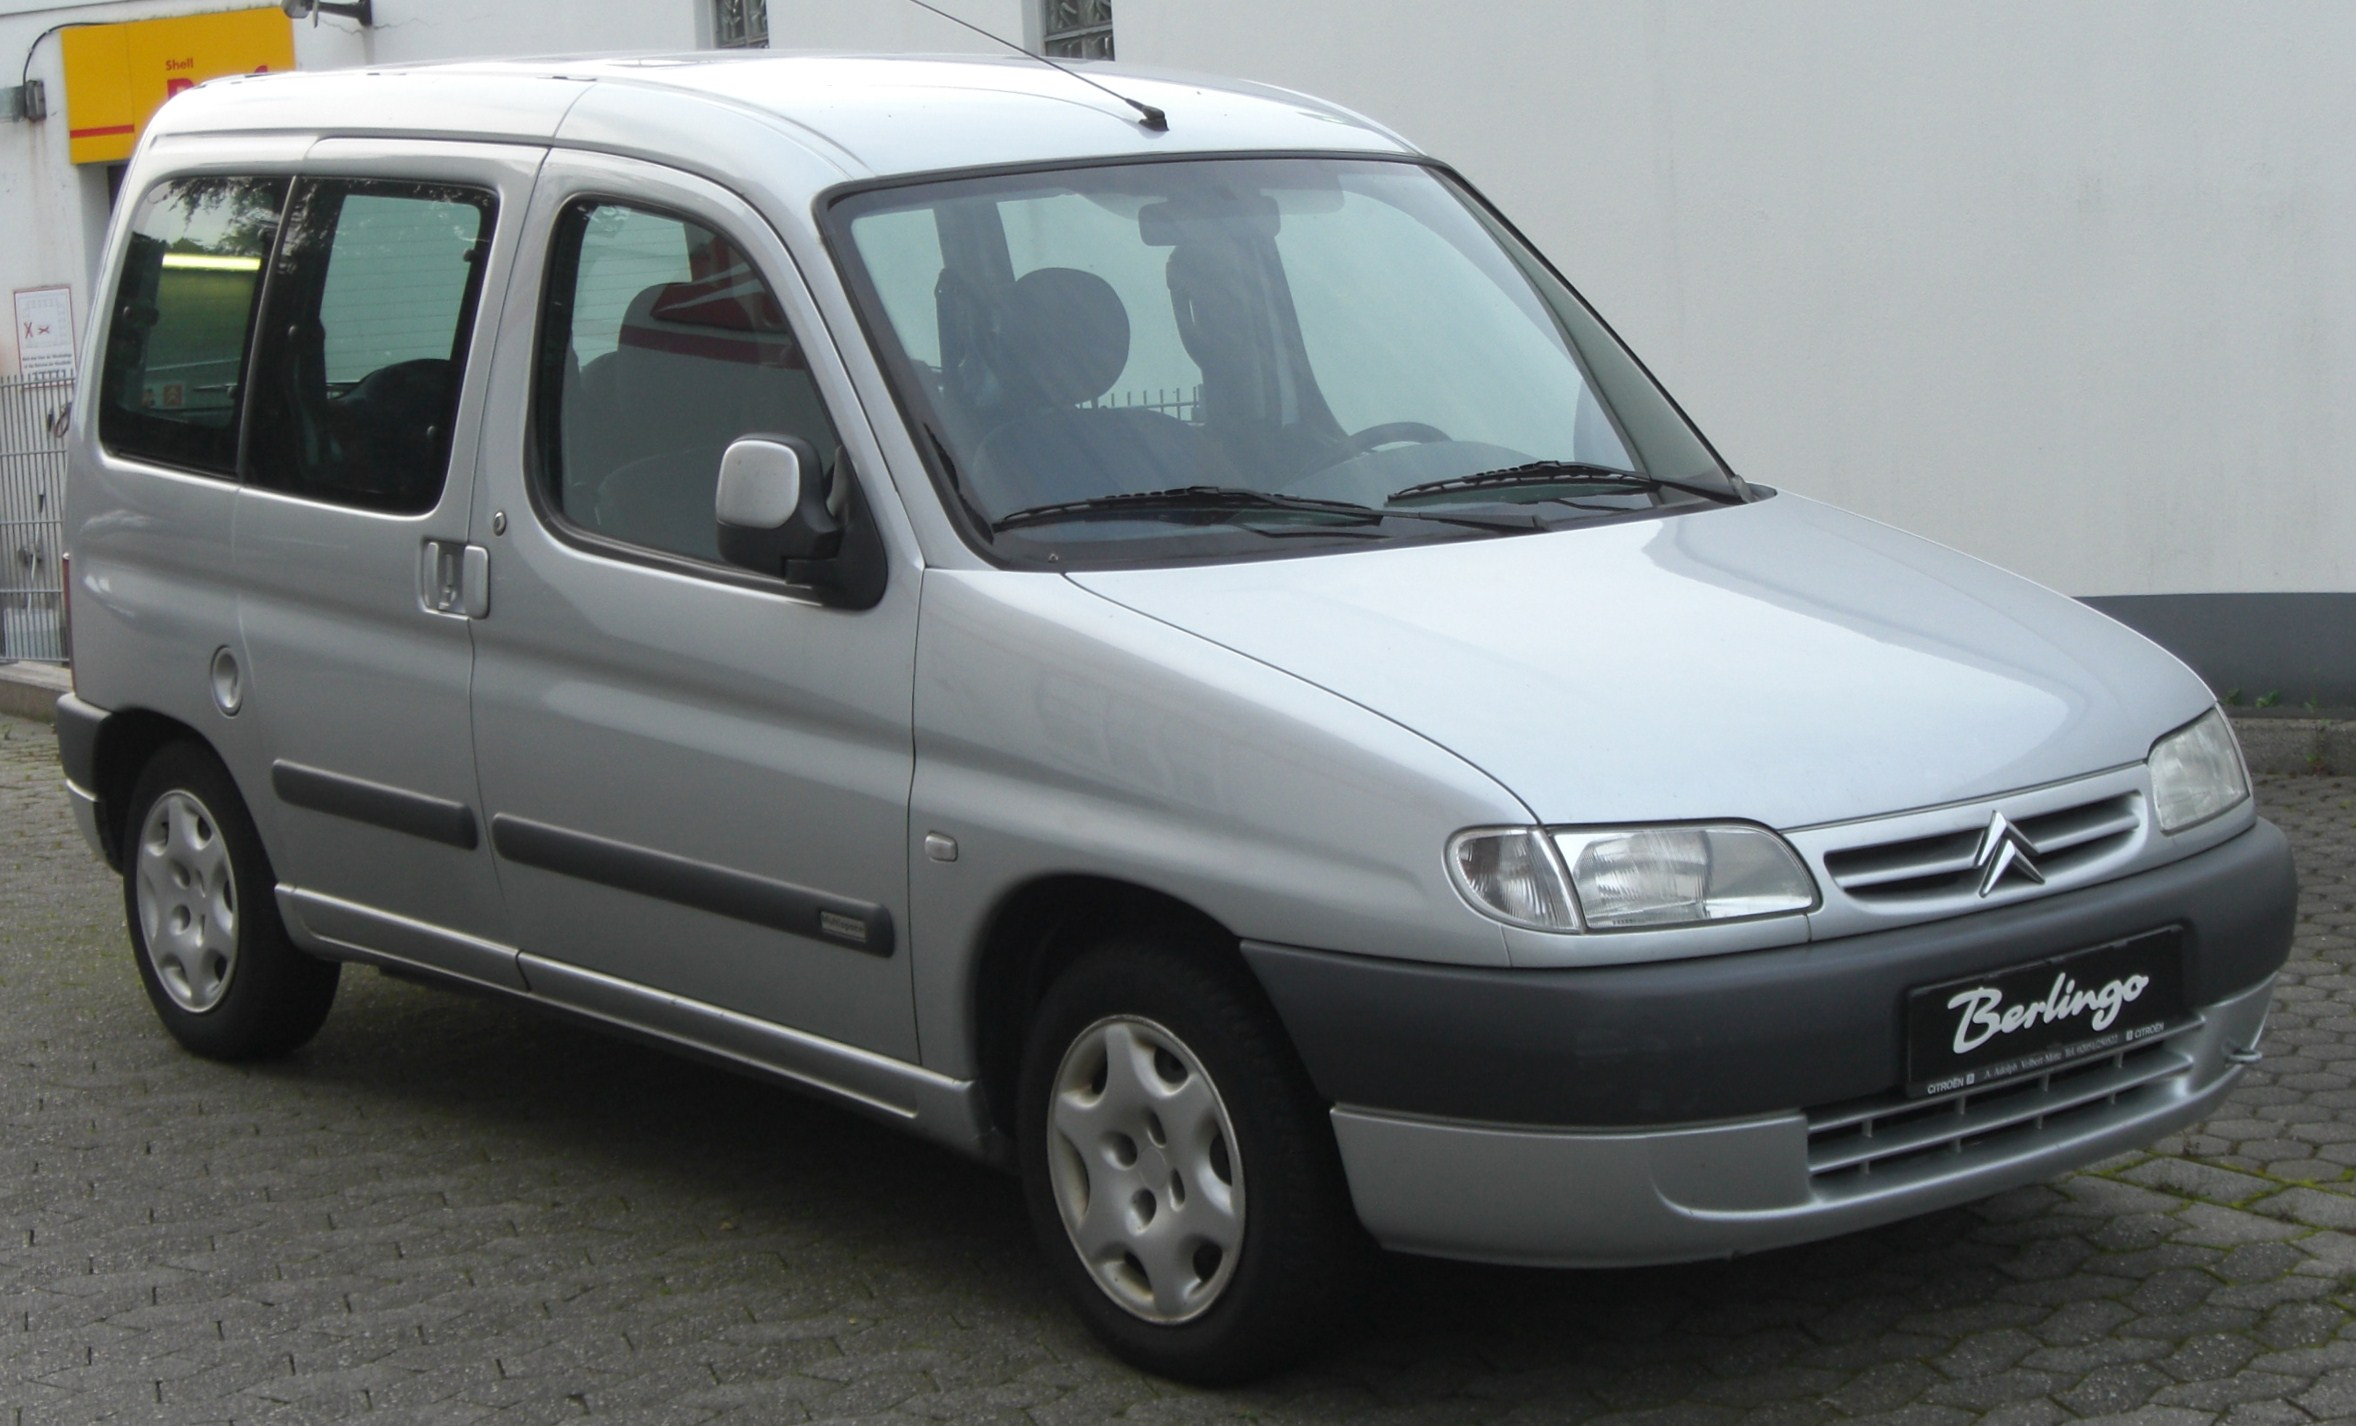 Citroen Berlingo Wikipedia